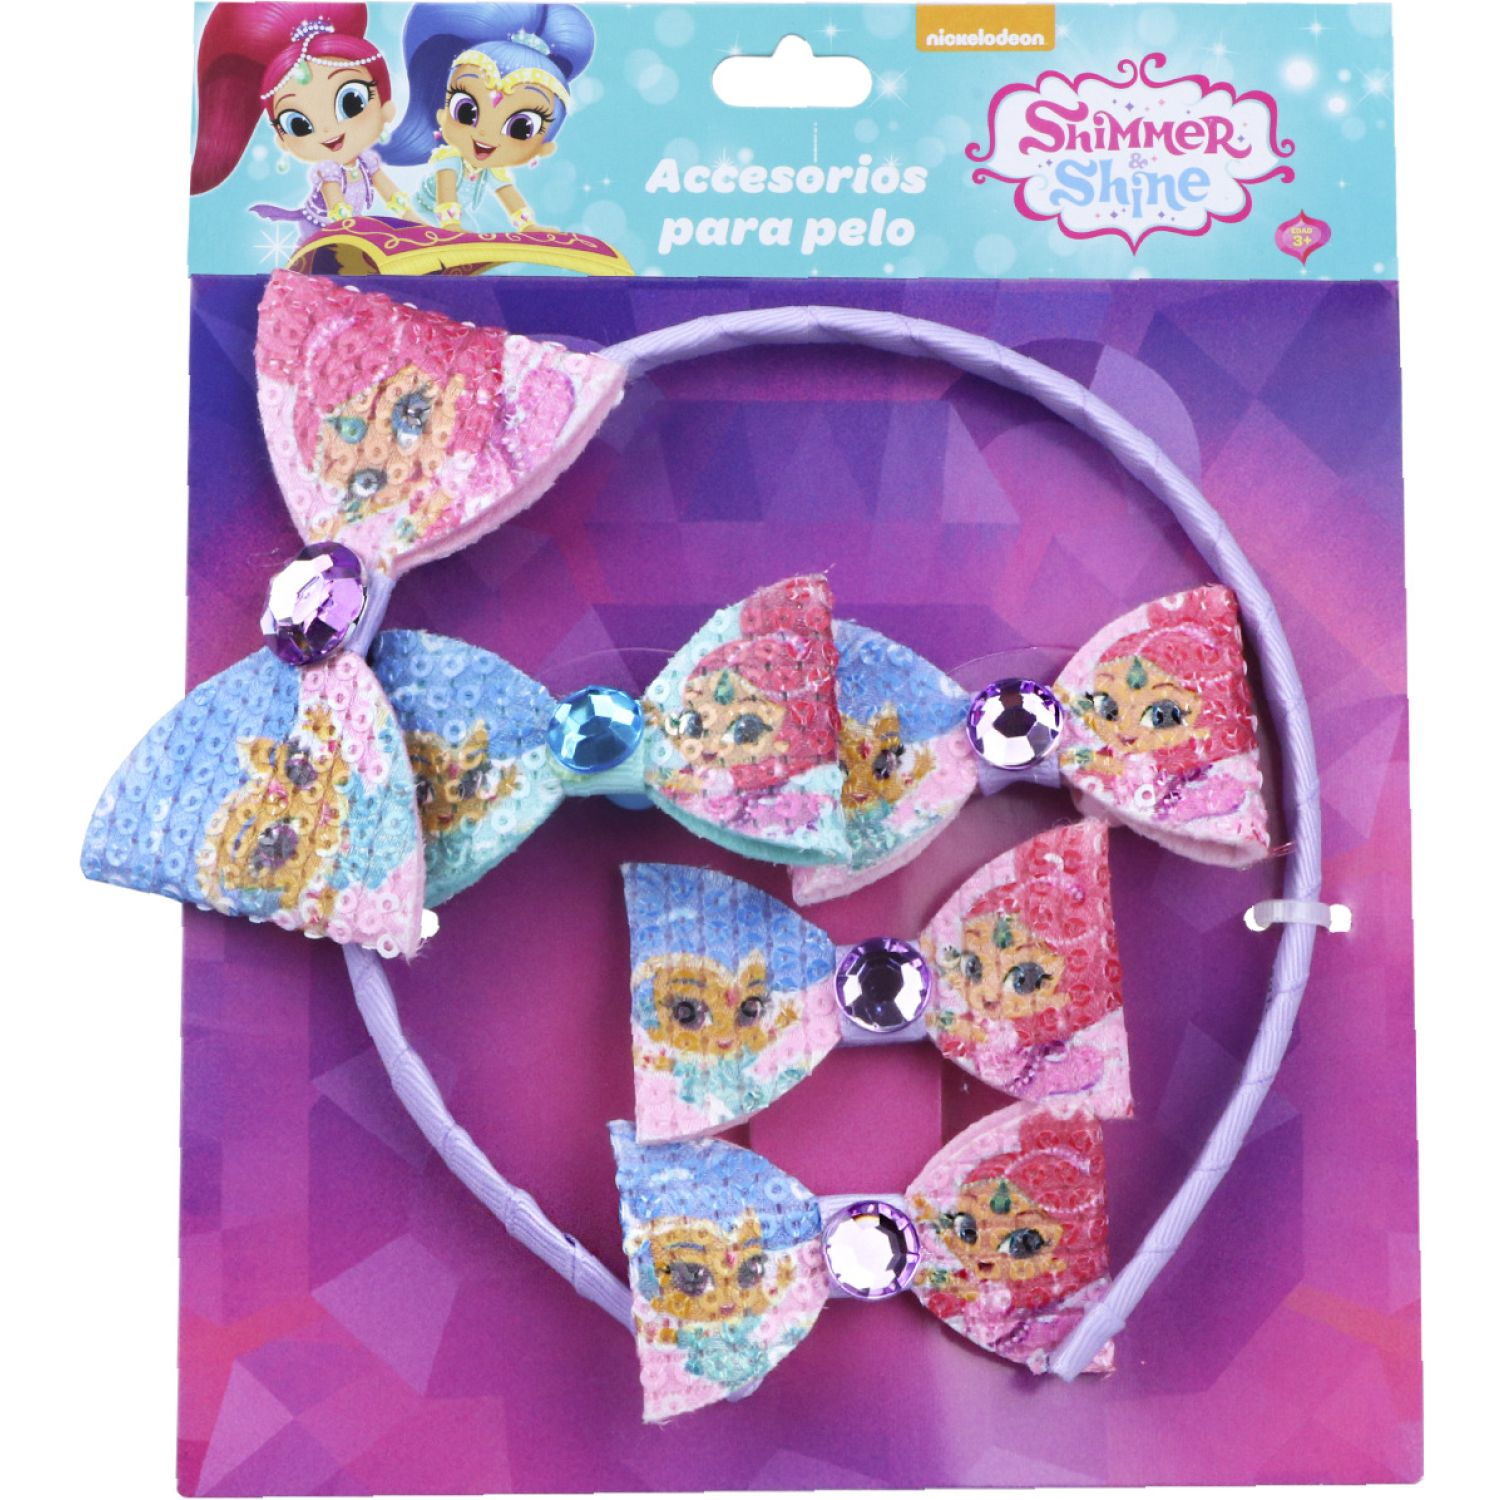 Shimmer And Shine Set Accs. Cabello Shimmer And Shine Varios Cepillos para Cabello